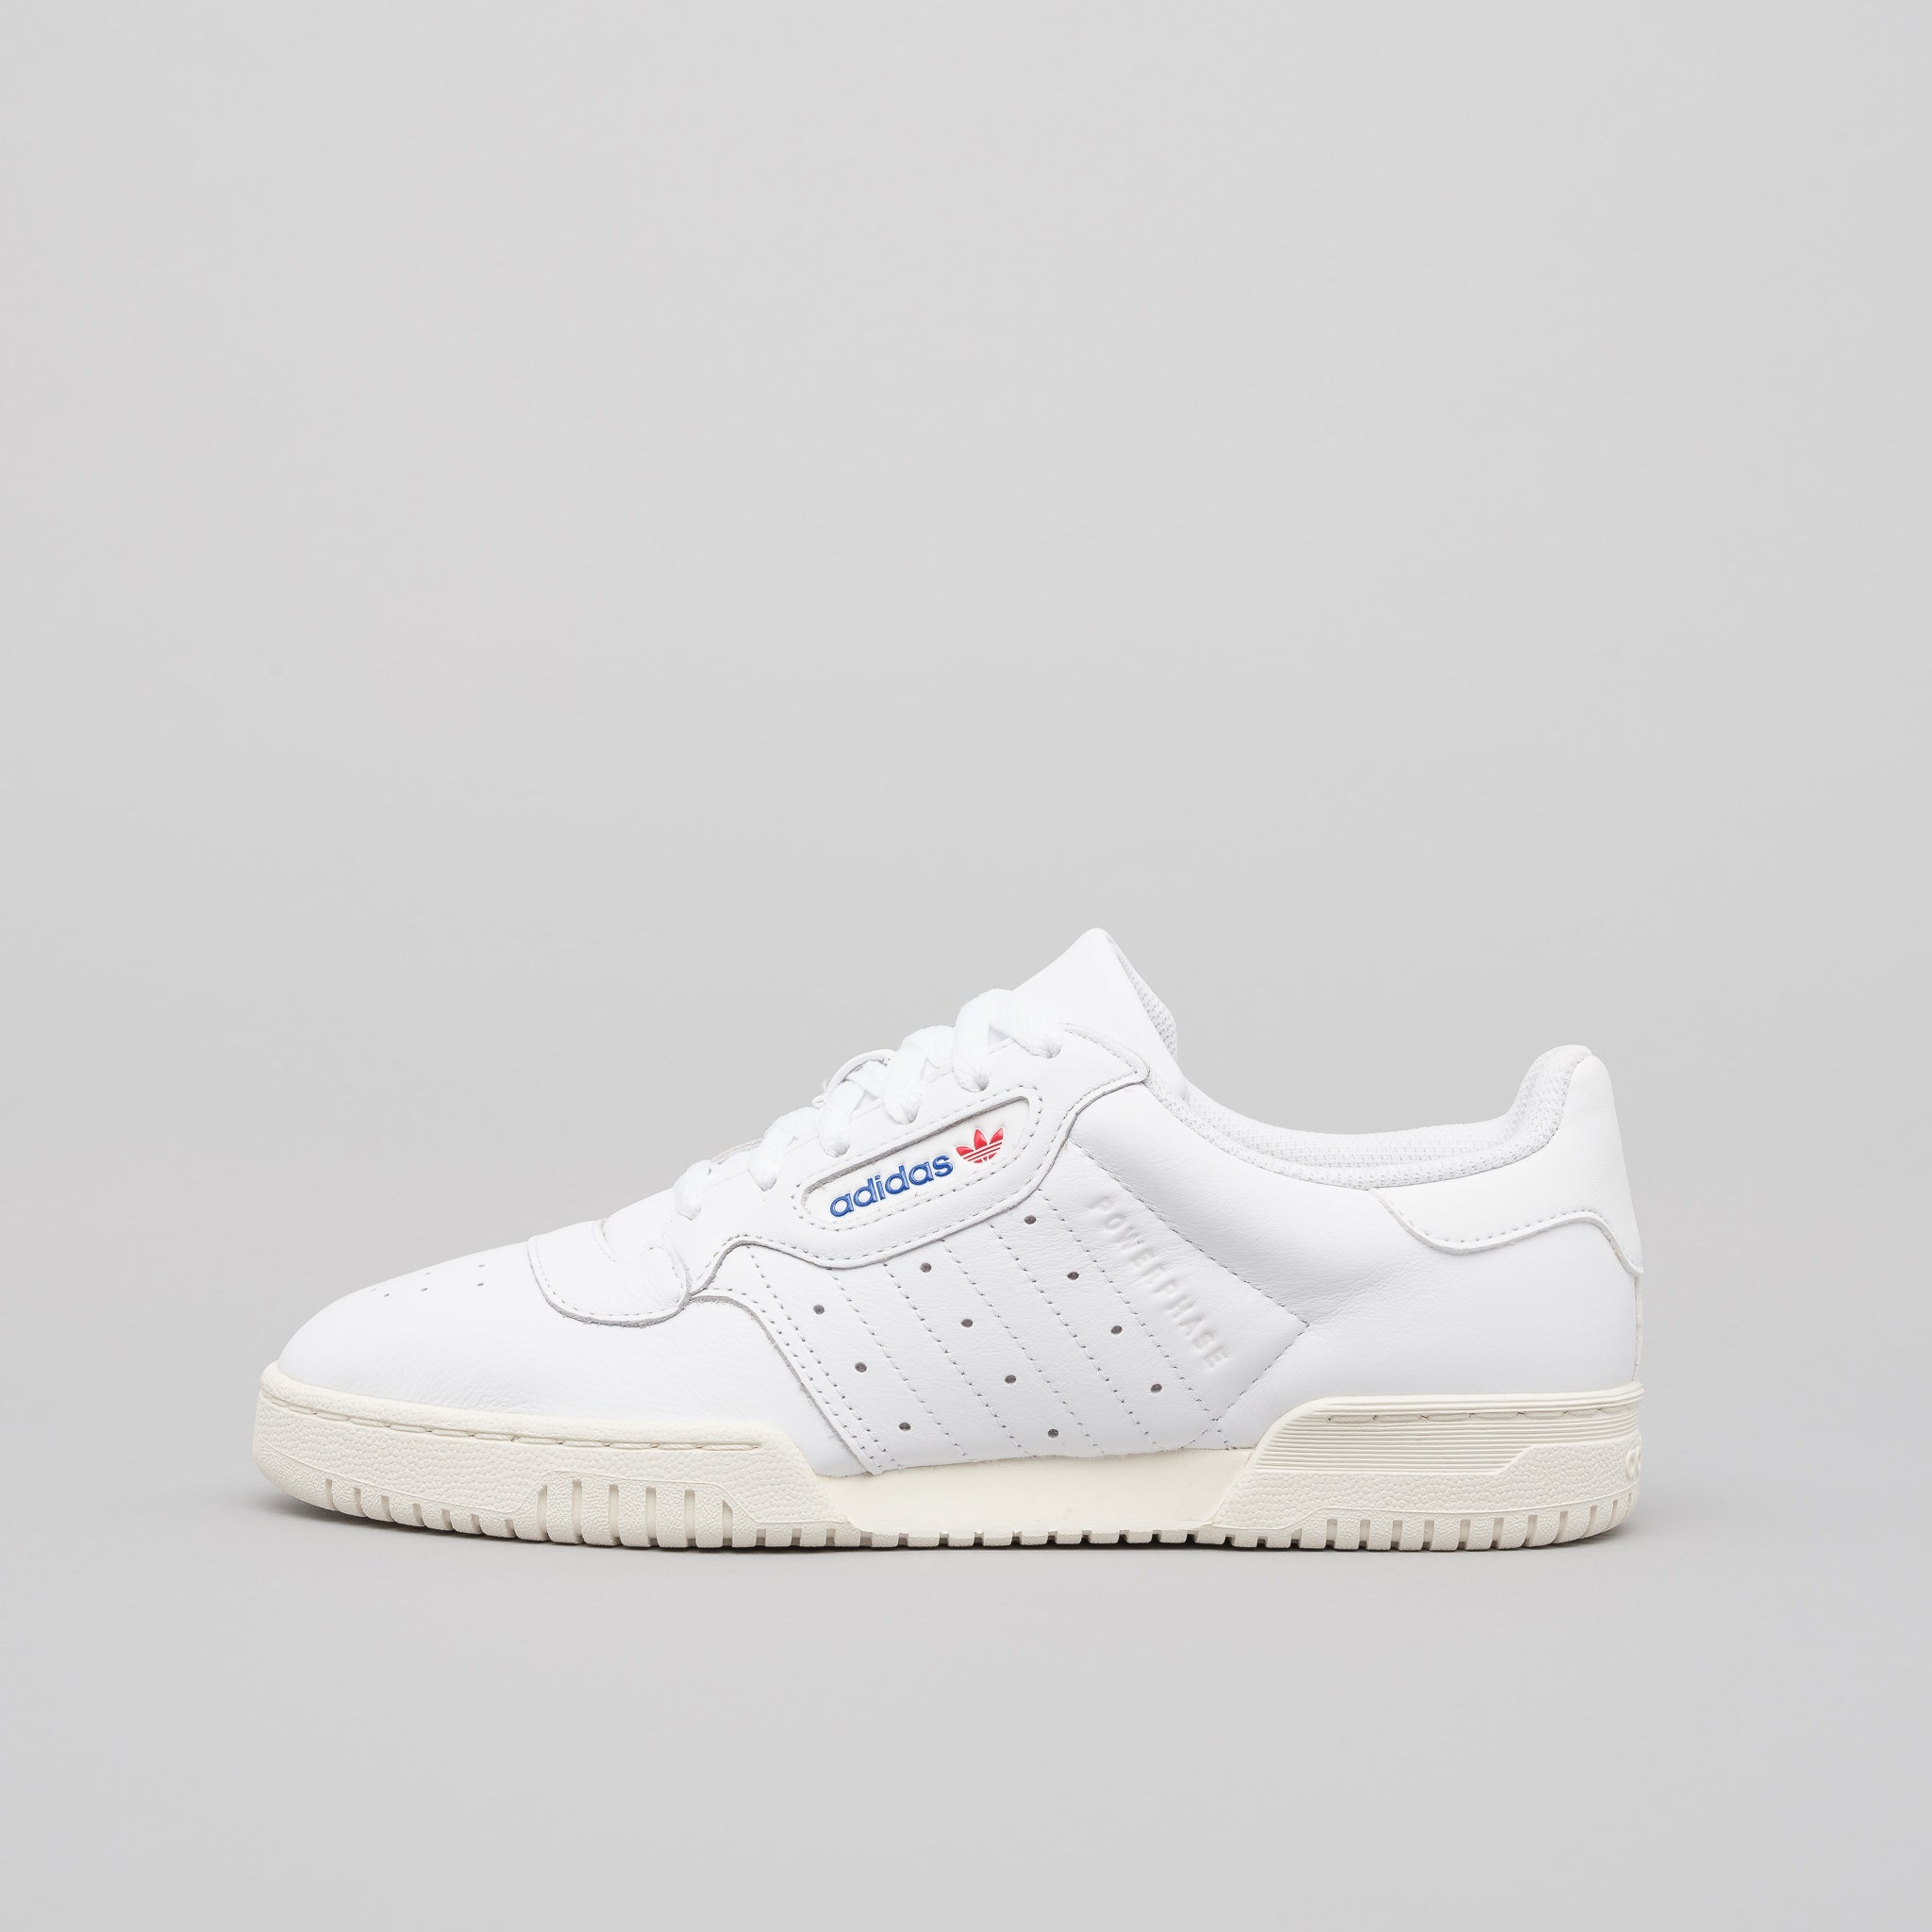 Powerphase in White